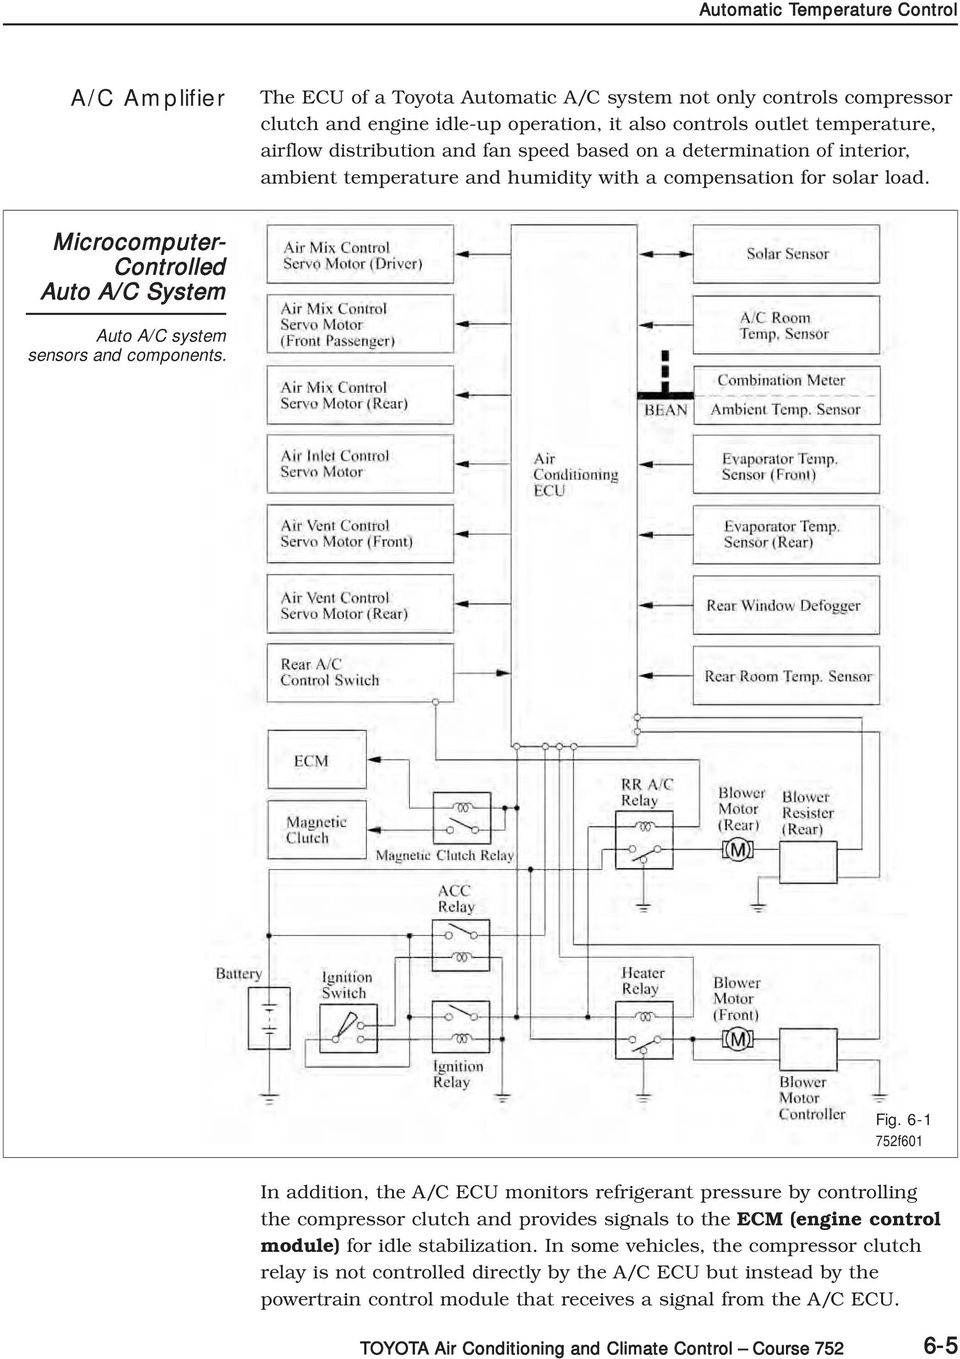 Microcomputer- Controlled Auto A/C System Auto A/C system sensors and components. Fig.